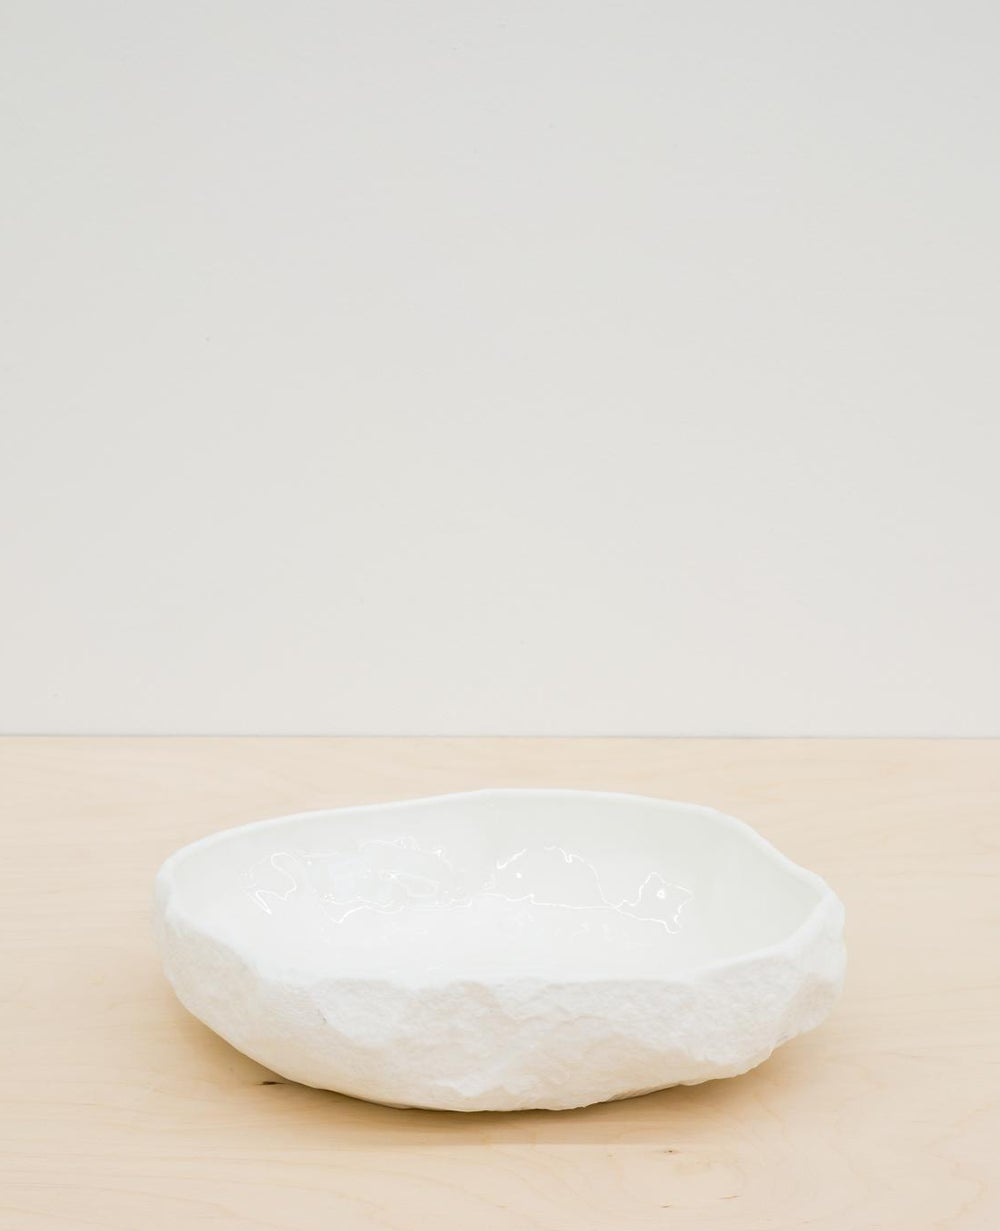 Image of Max Lamb - Crockery large flat bowl, White